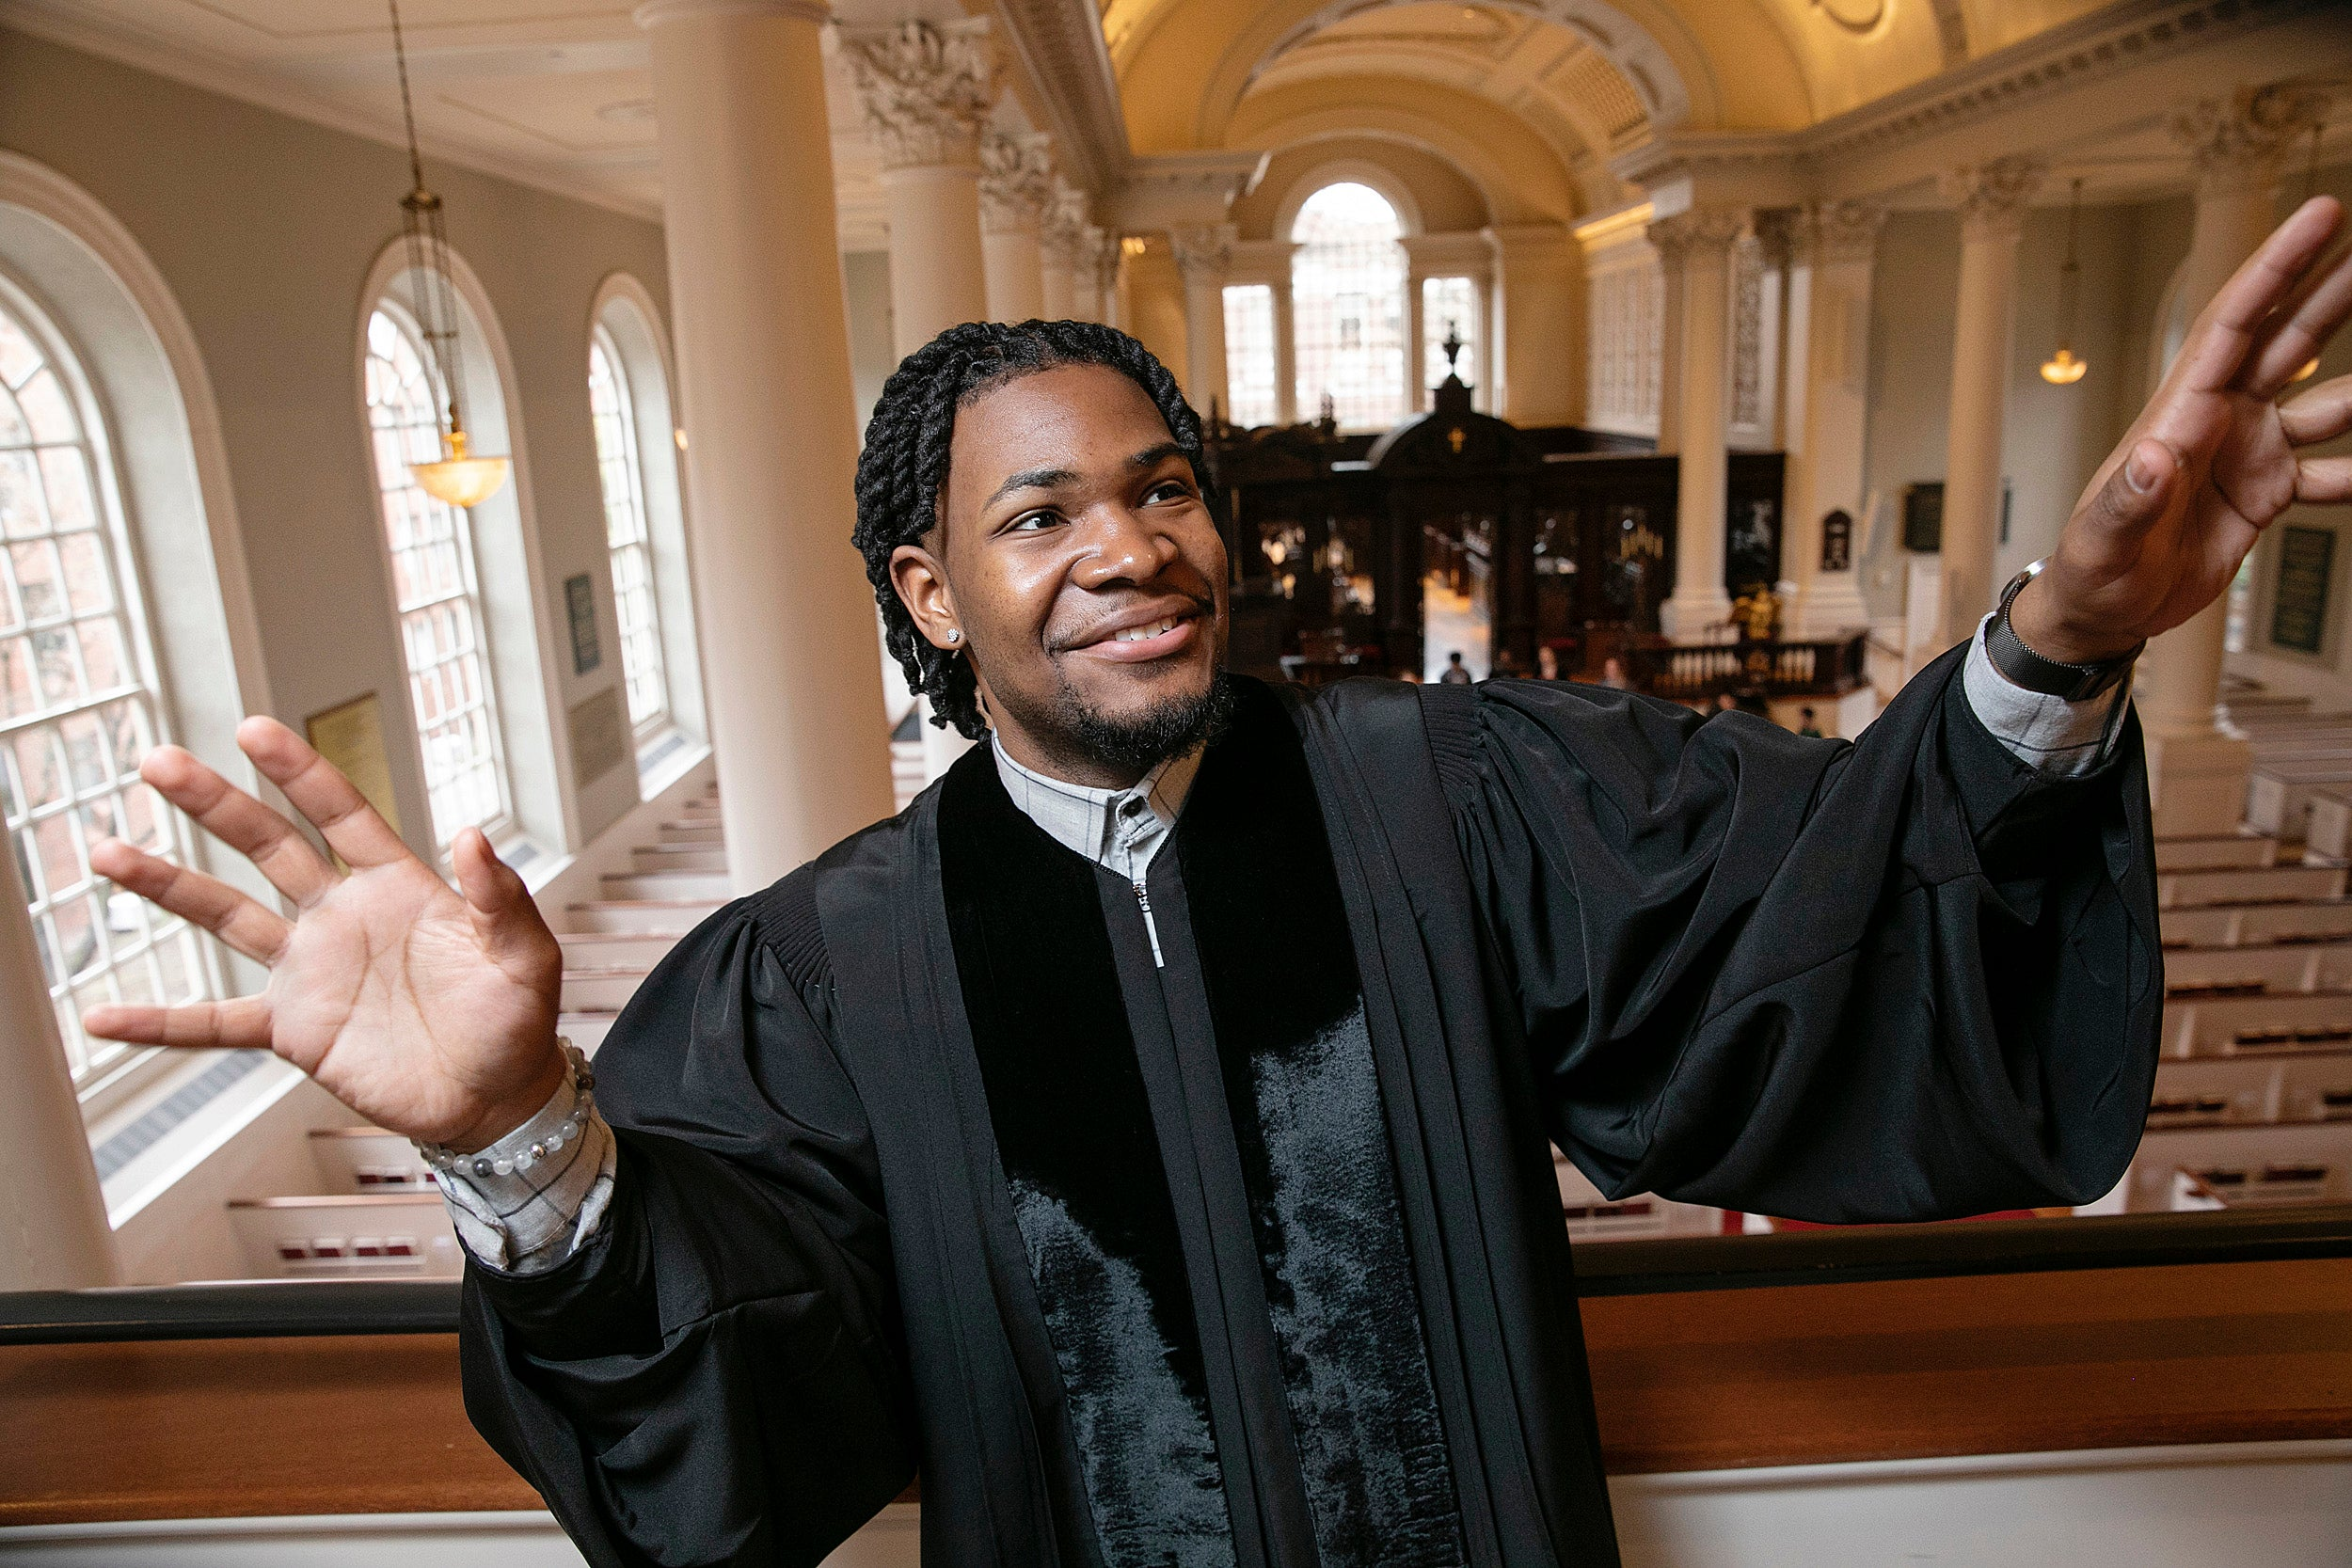 Aric Flemming in a priest's gown standing in church